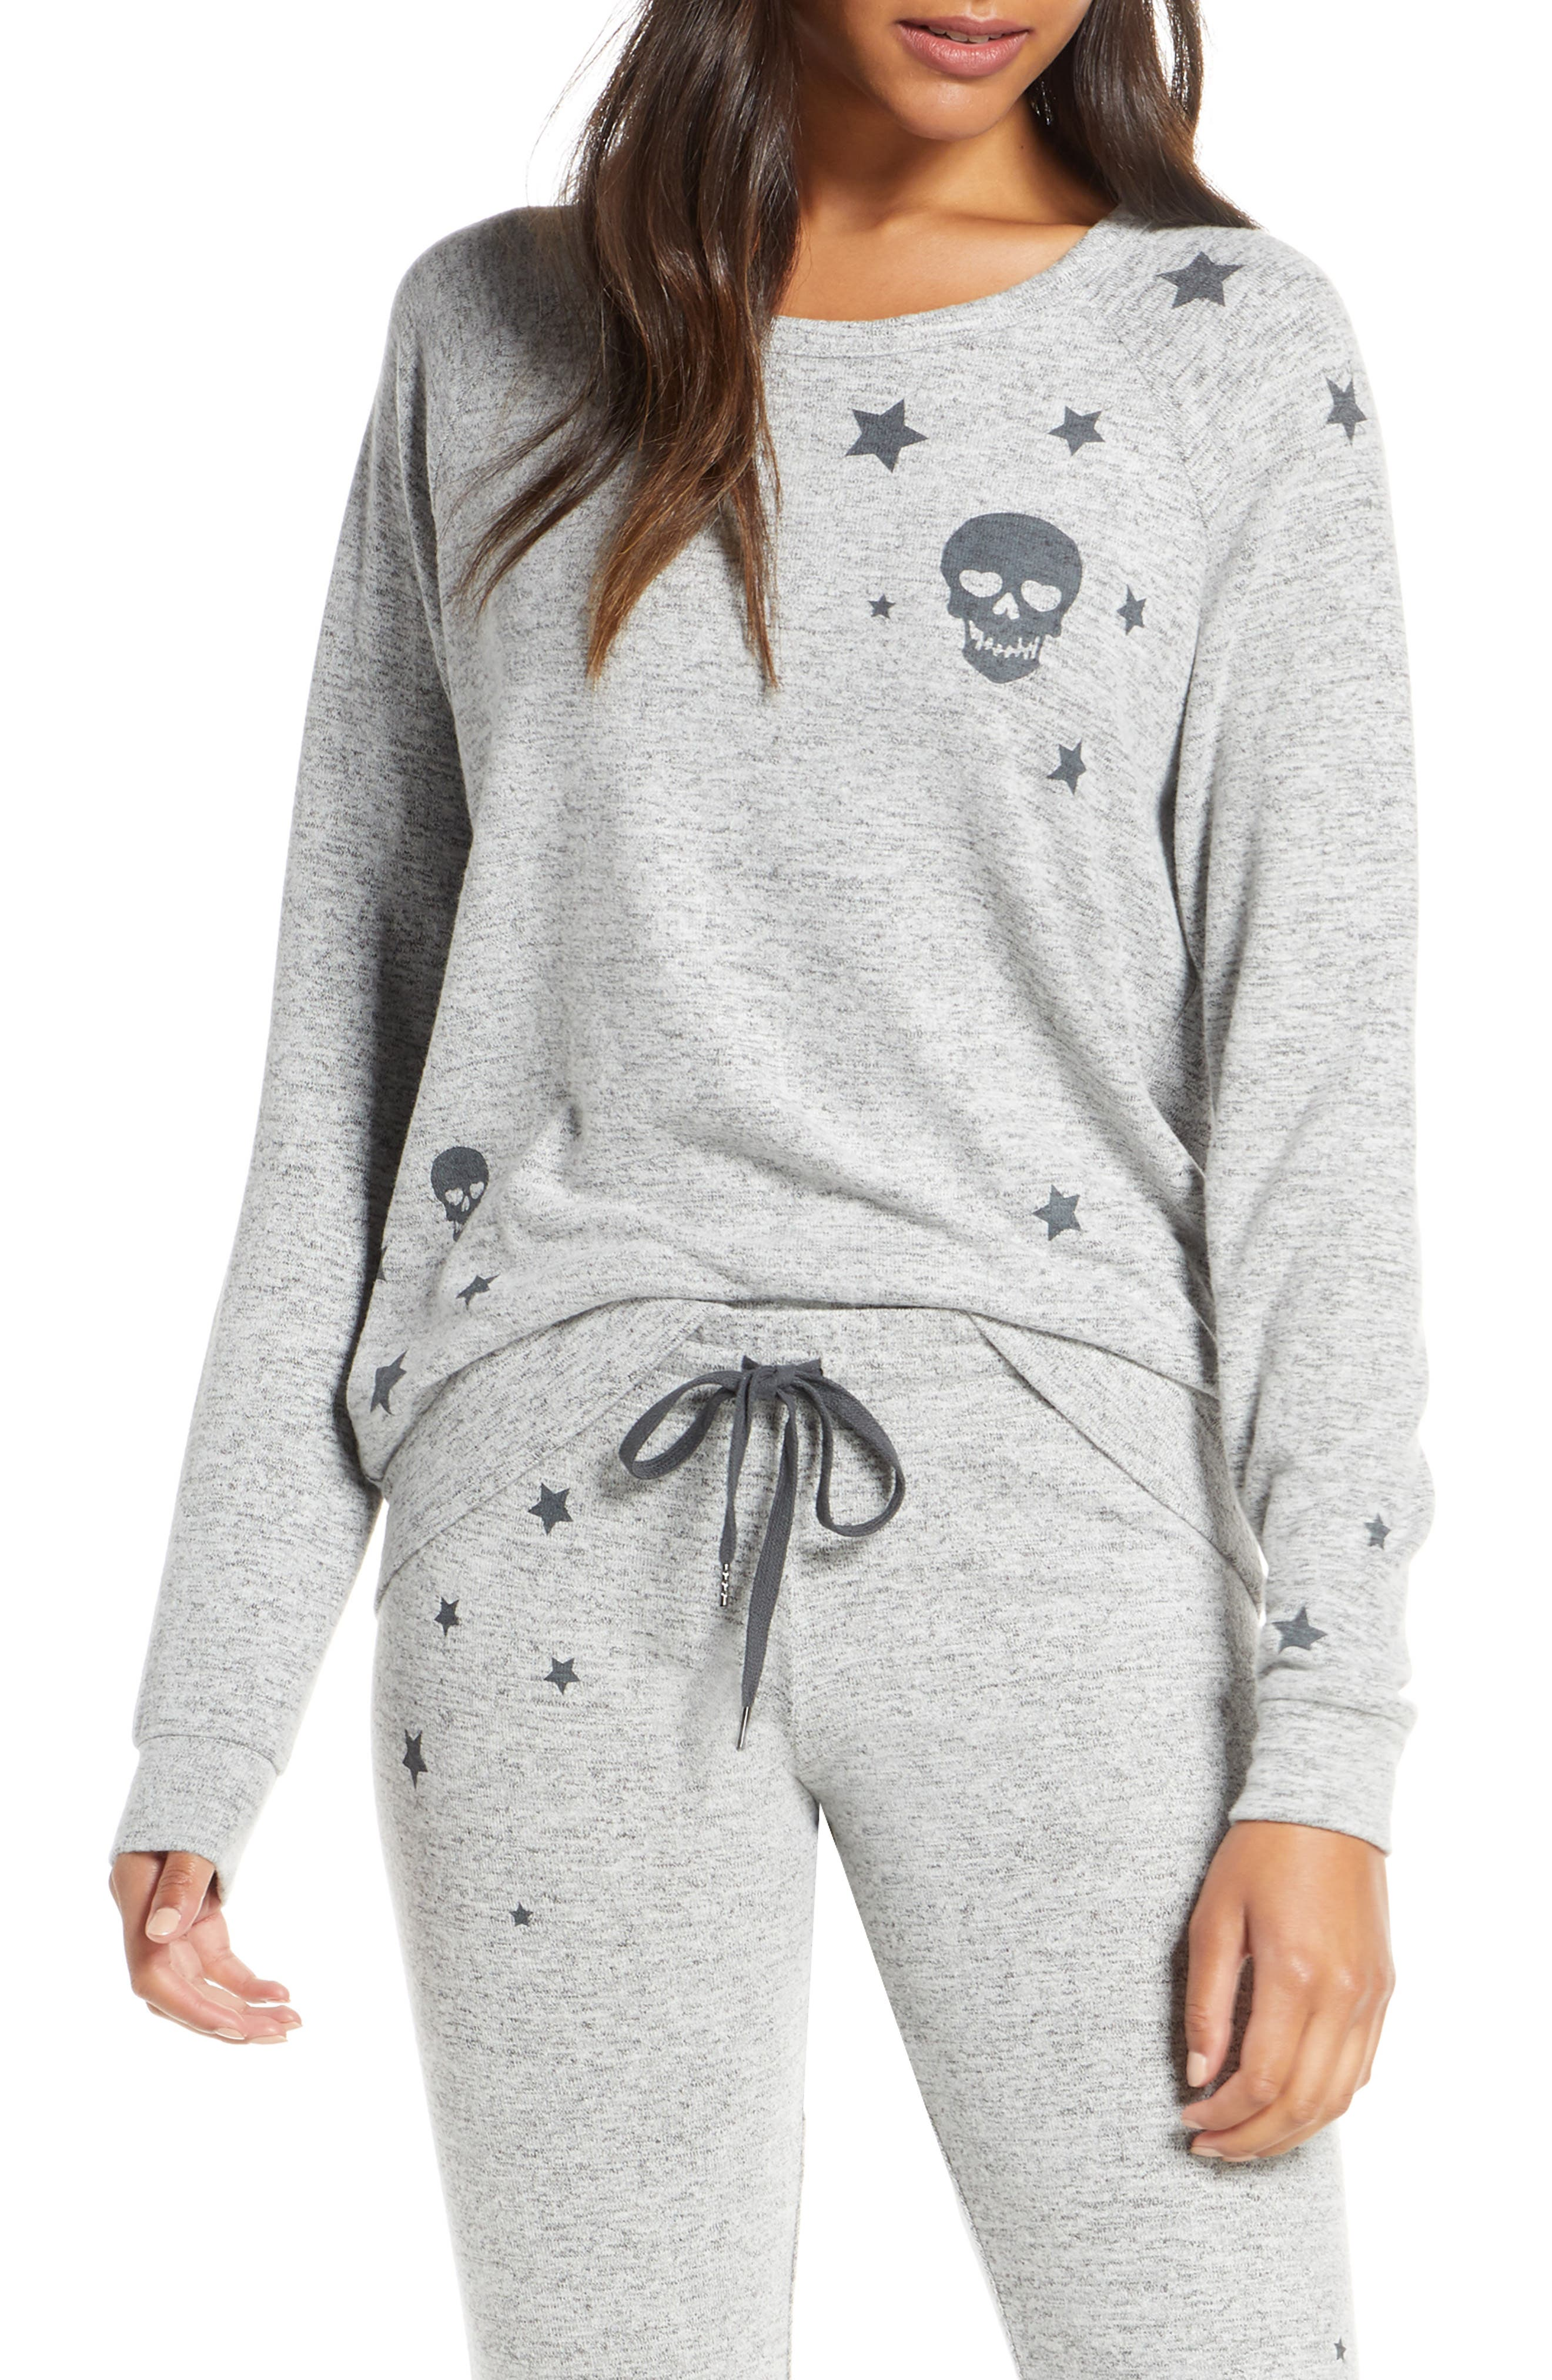 Pj Salvage Stars & Skulls Pajama Top, Grey